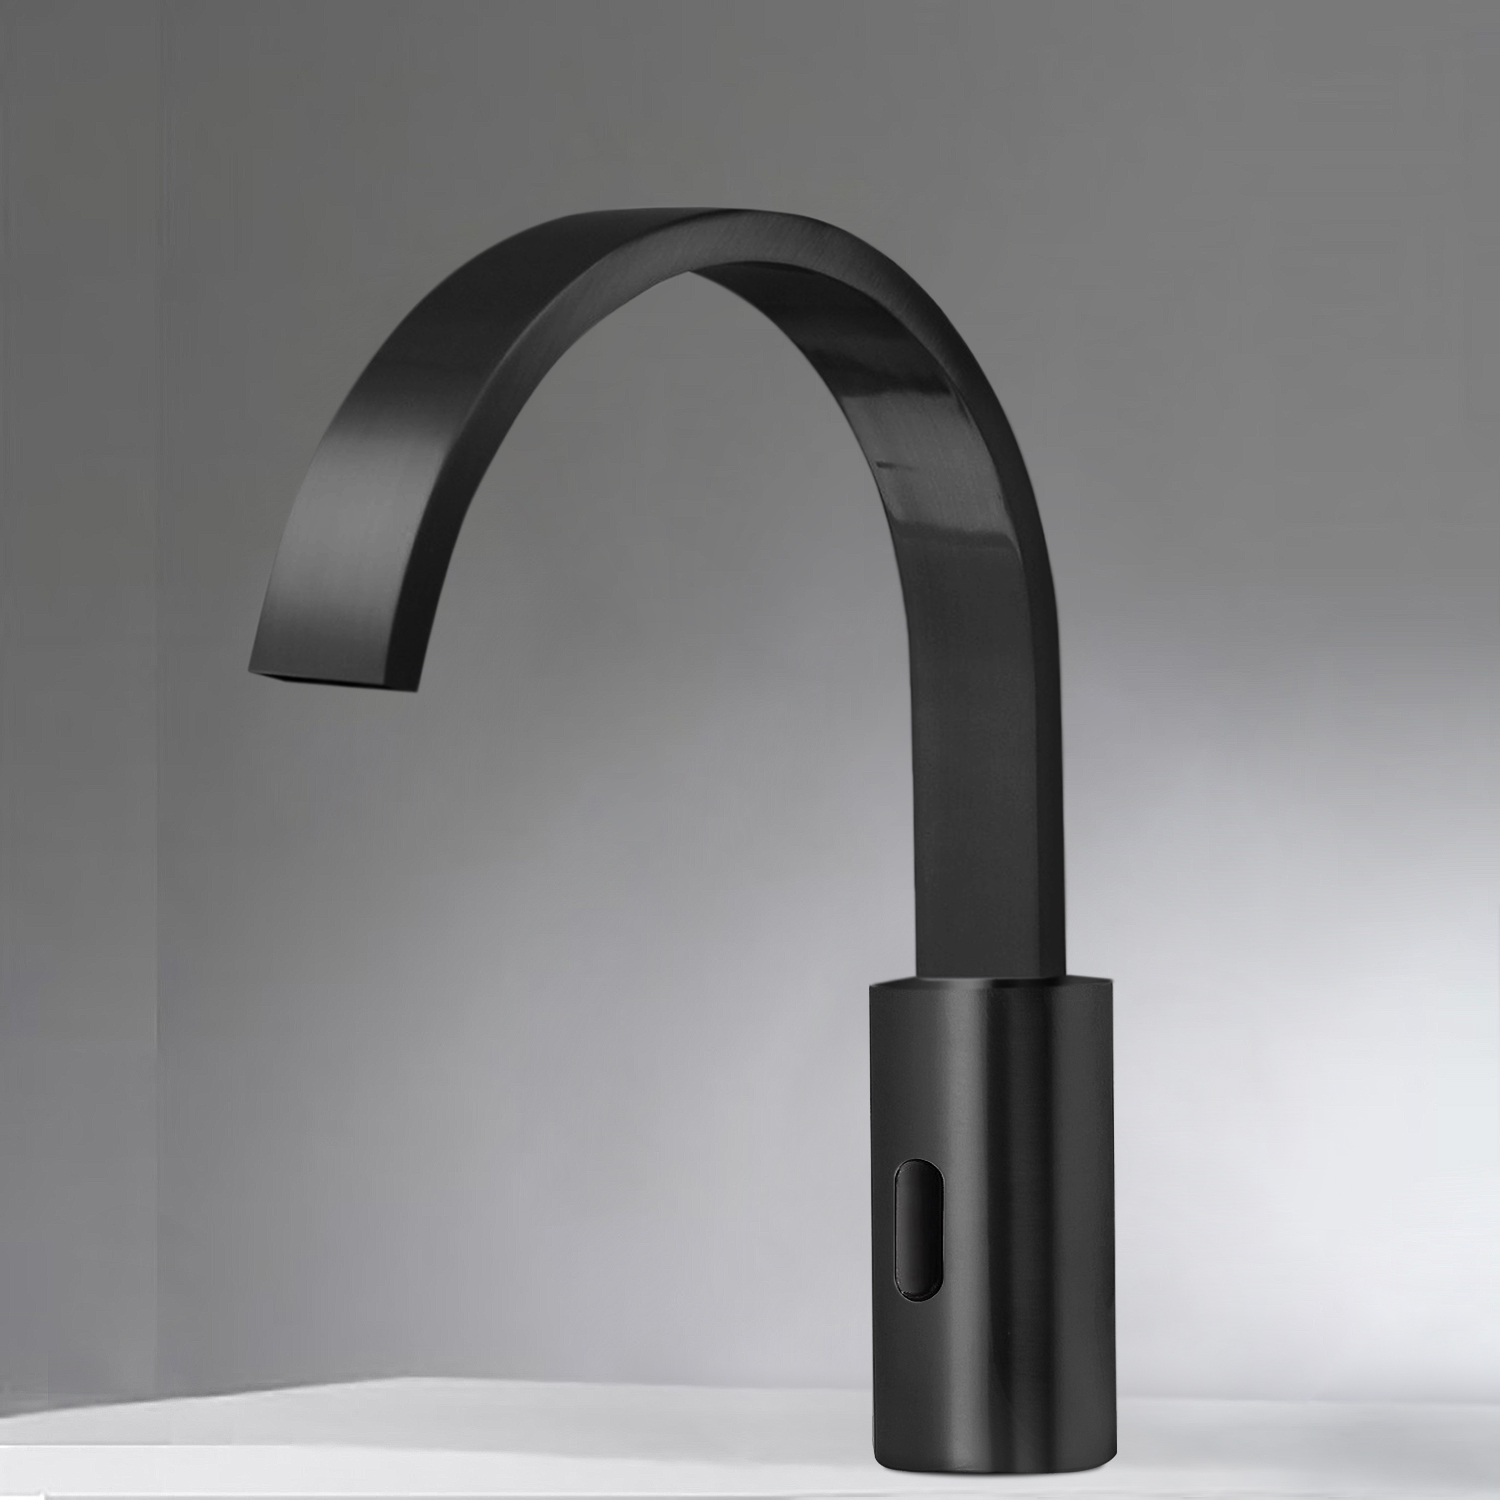 ORB//Nickel Led Automatic Waterfall Mixer Sensor Touchless Faucet Hands Free Tap